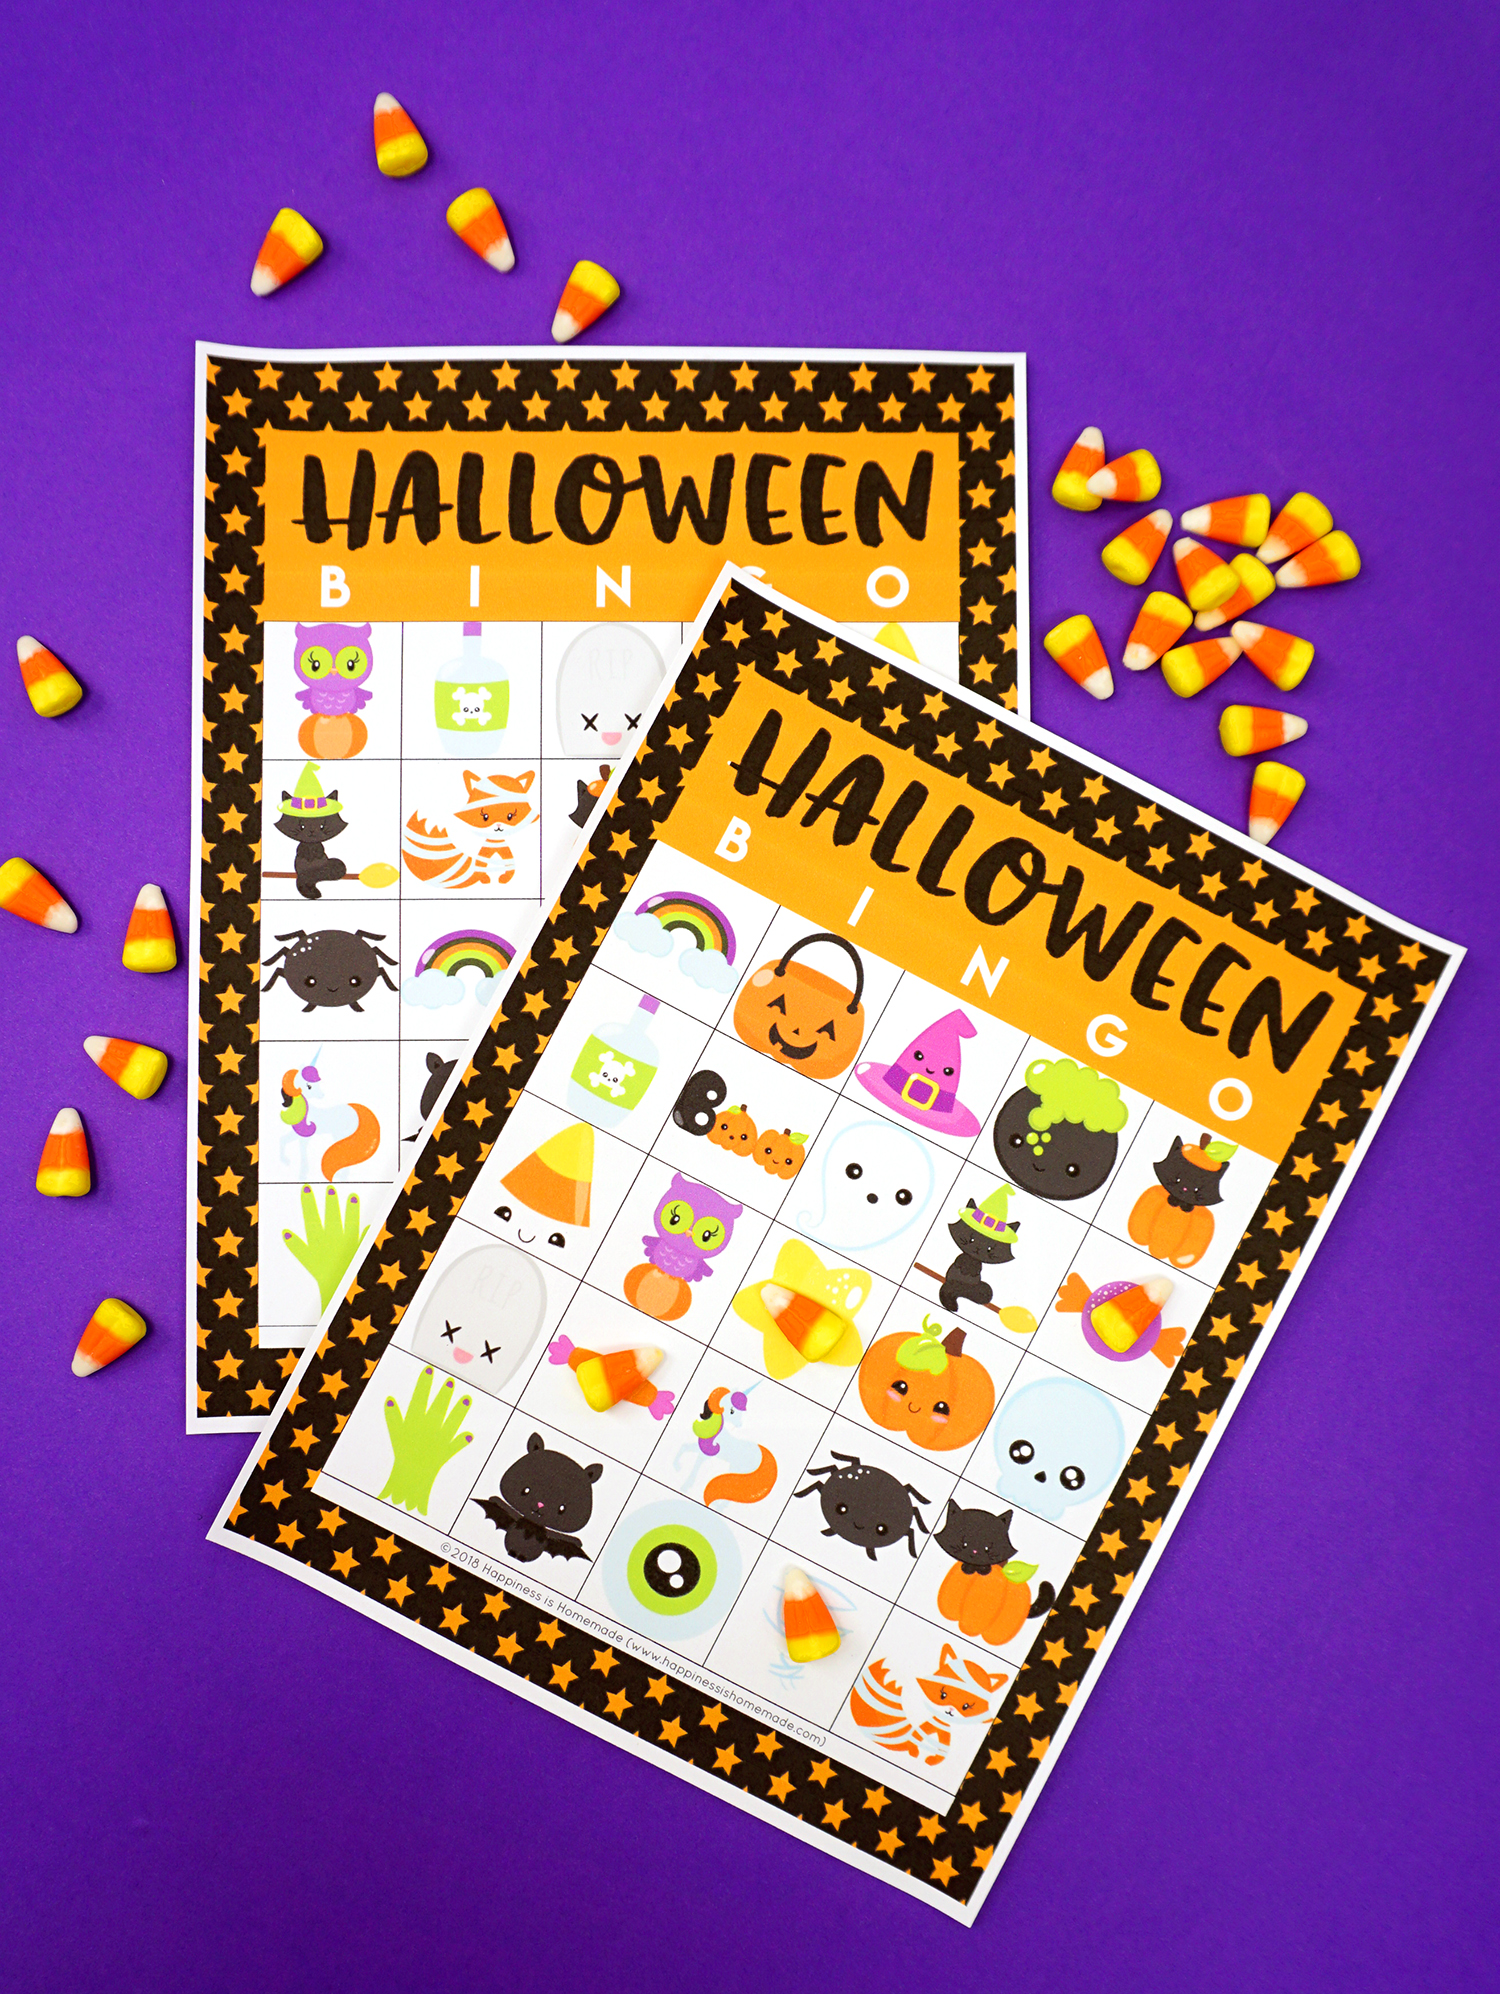 image about Printable Halloween Bingo Cards known as Printable Halloween Bingo Playing cards - Pleasure is Selfmade